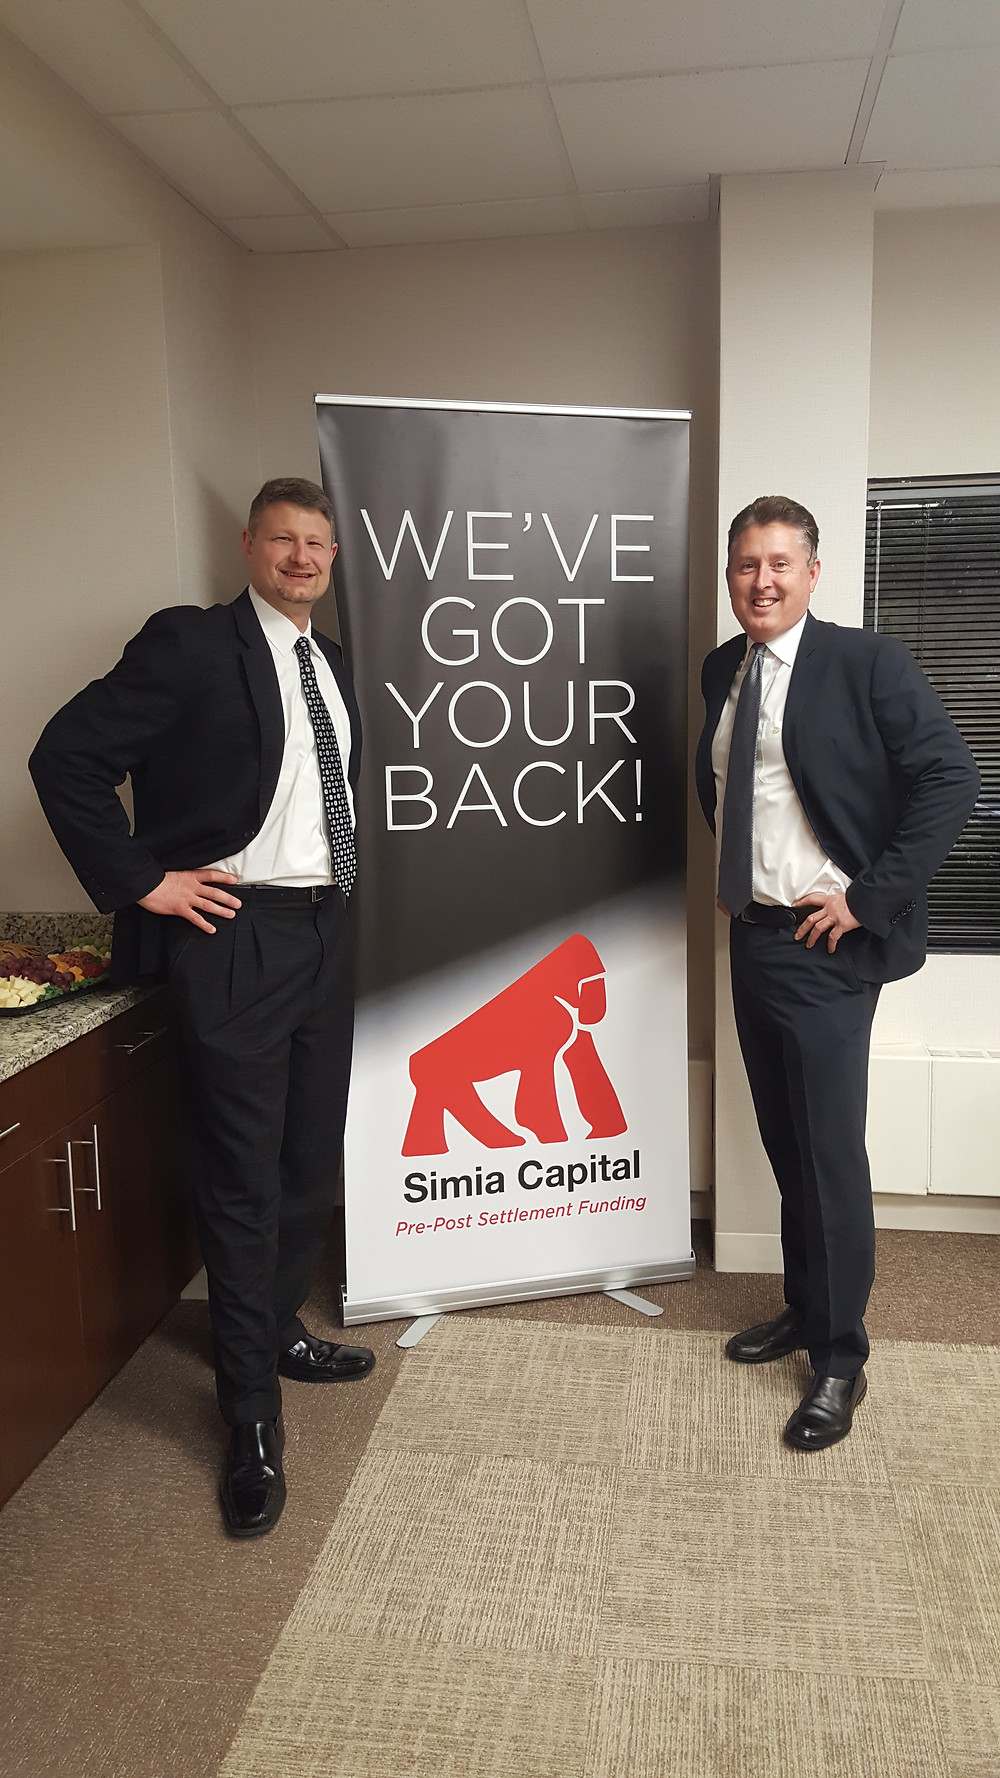 At Simia, we really do have your back!